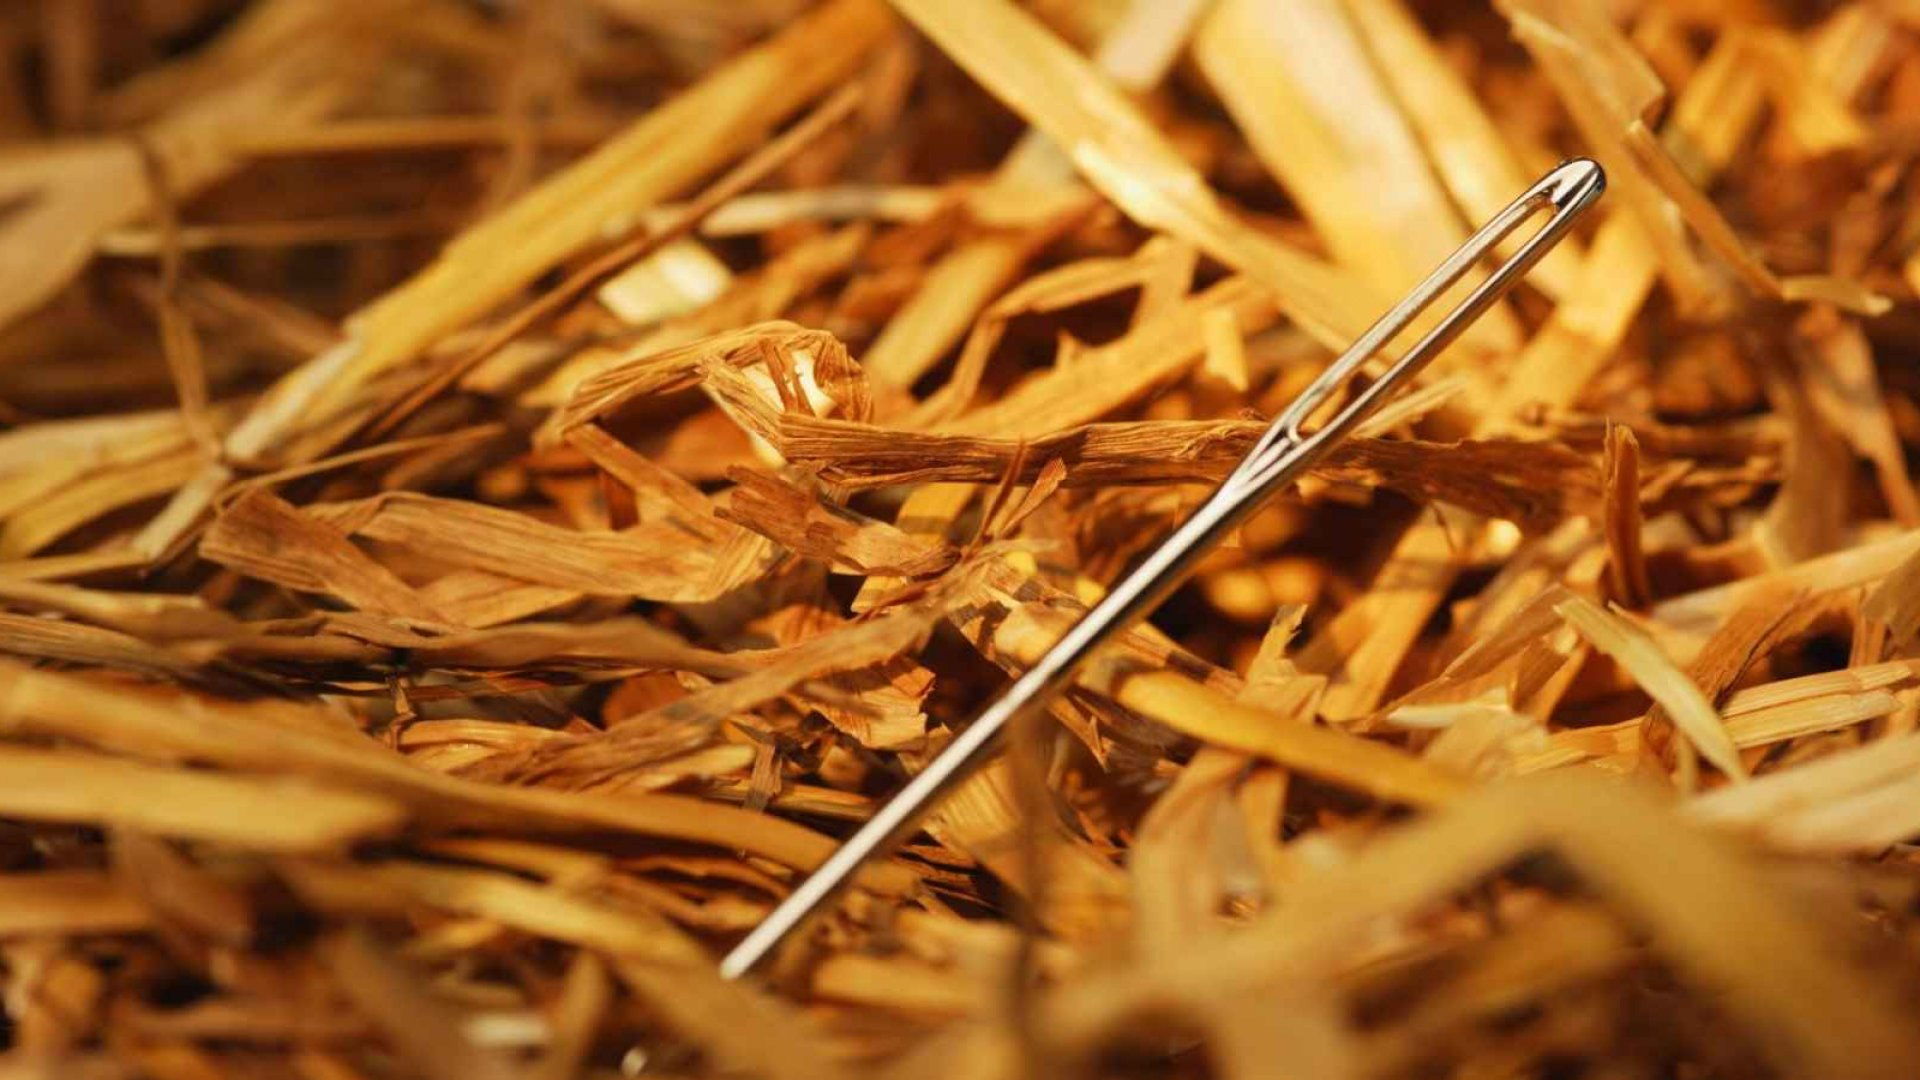 There are so many freelance job sites out there now that finding a gig shouldn't be like looking for a needle in a haystack.